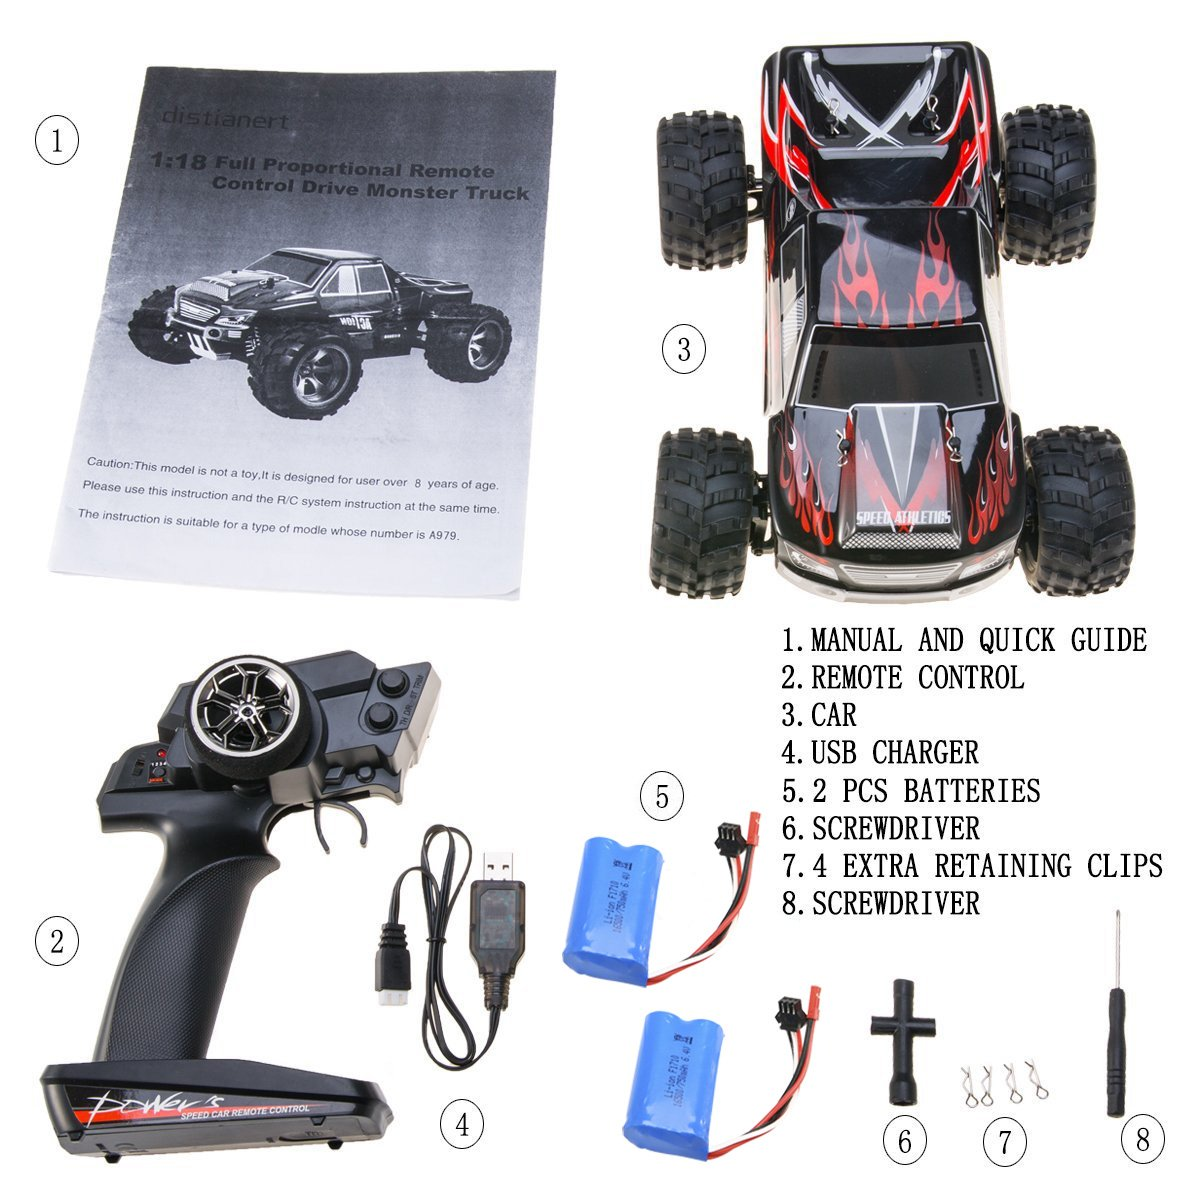 Remote Control Car, Distianert 1/18 Scale 4WD RC Car Electric Racing Car Off Road RC Monster Truck RTR Desert Buggy Vehicle 2.4Ghz 30MPH High Speed with 2 Rechargeable Batteries by Distianert (Image #1)